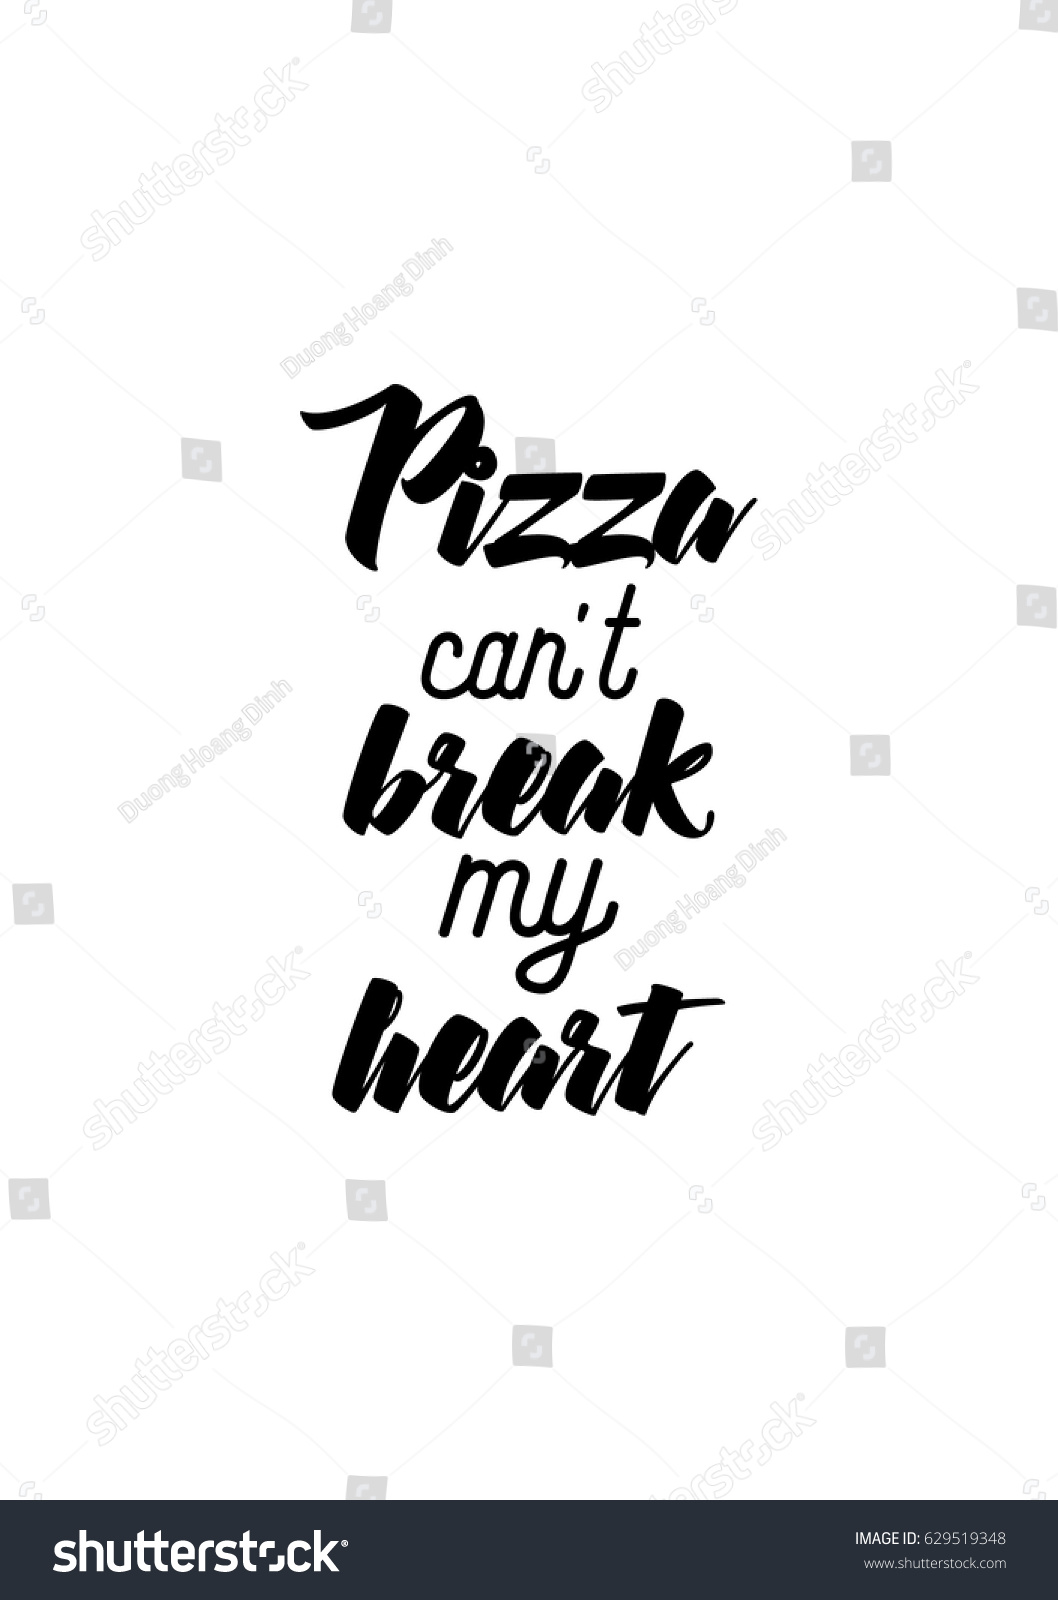 why break my heart quotes